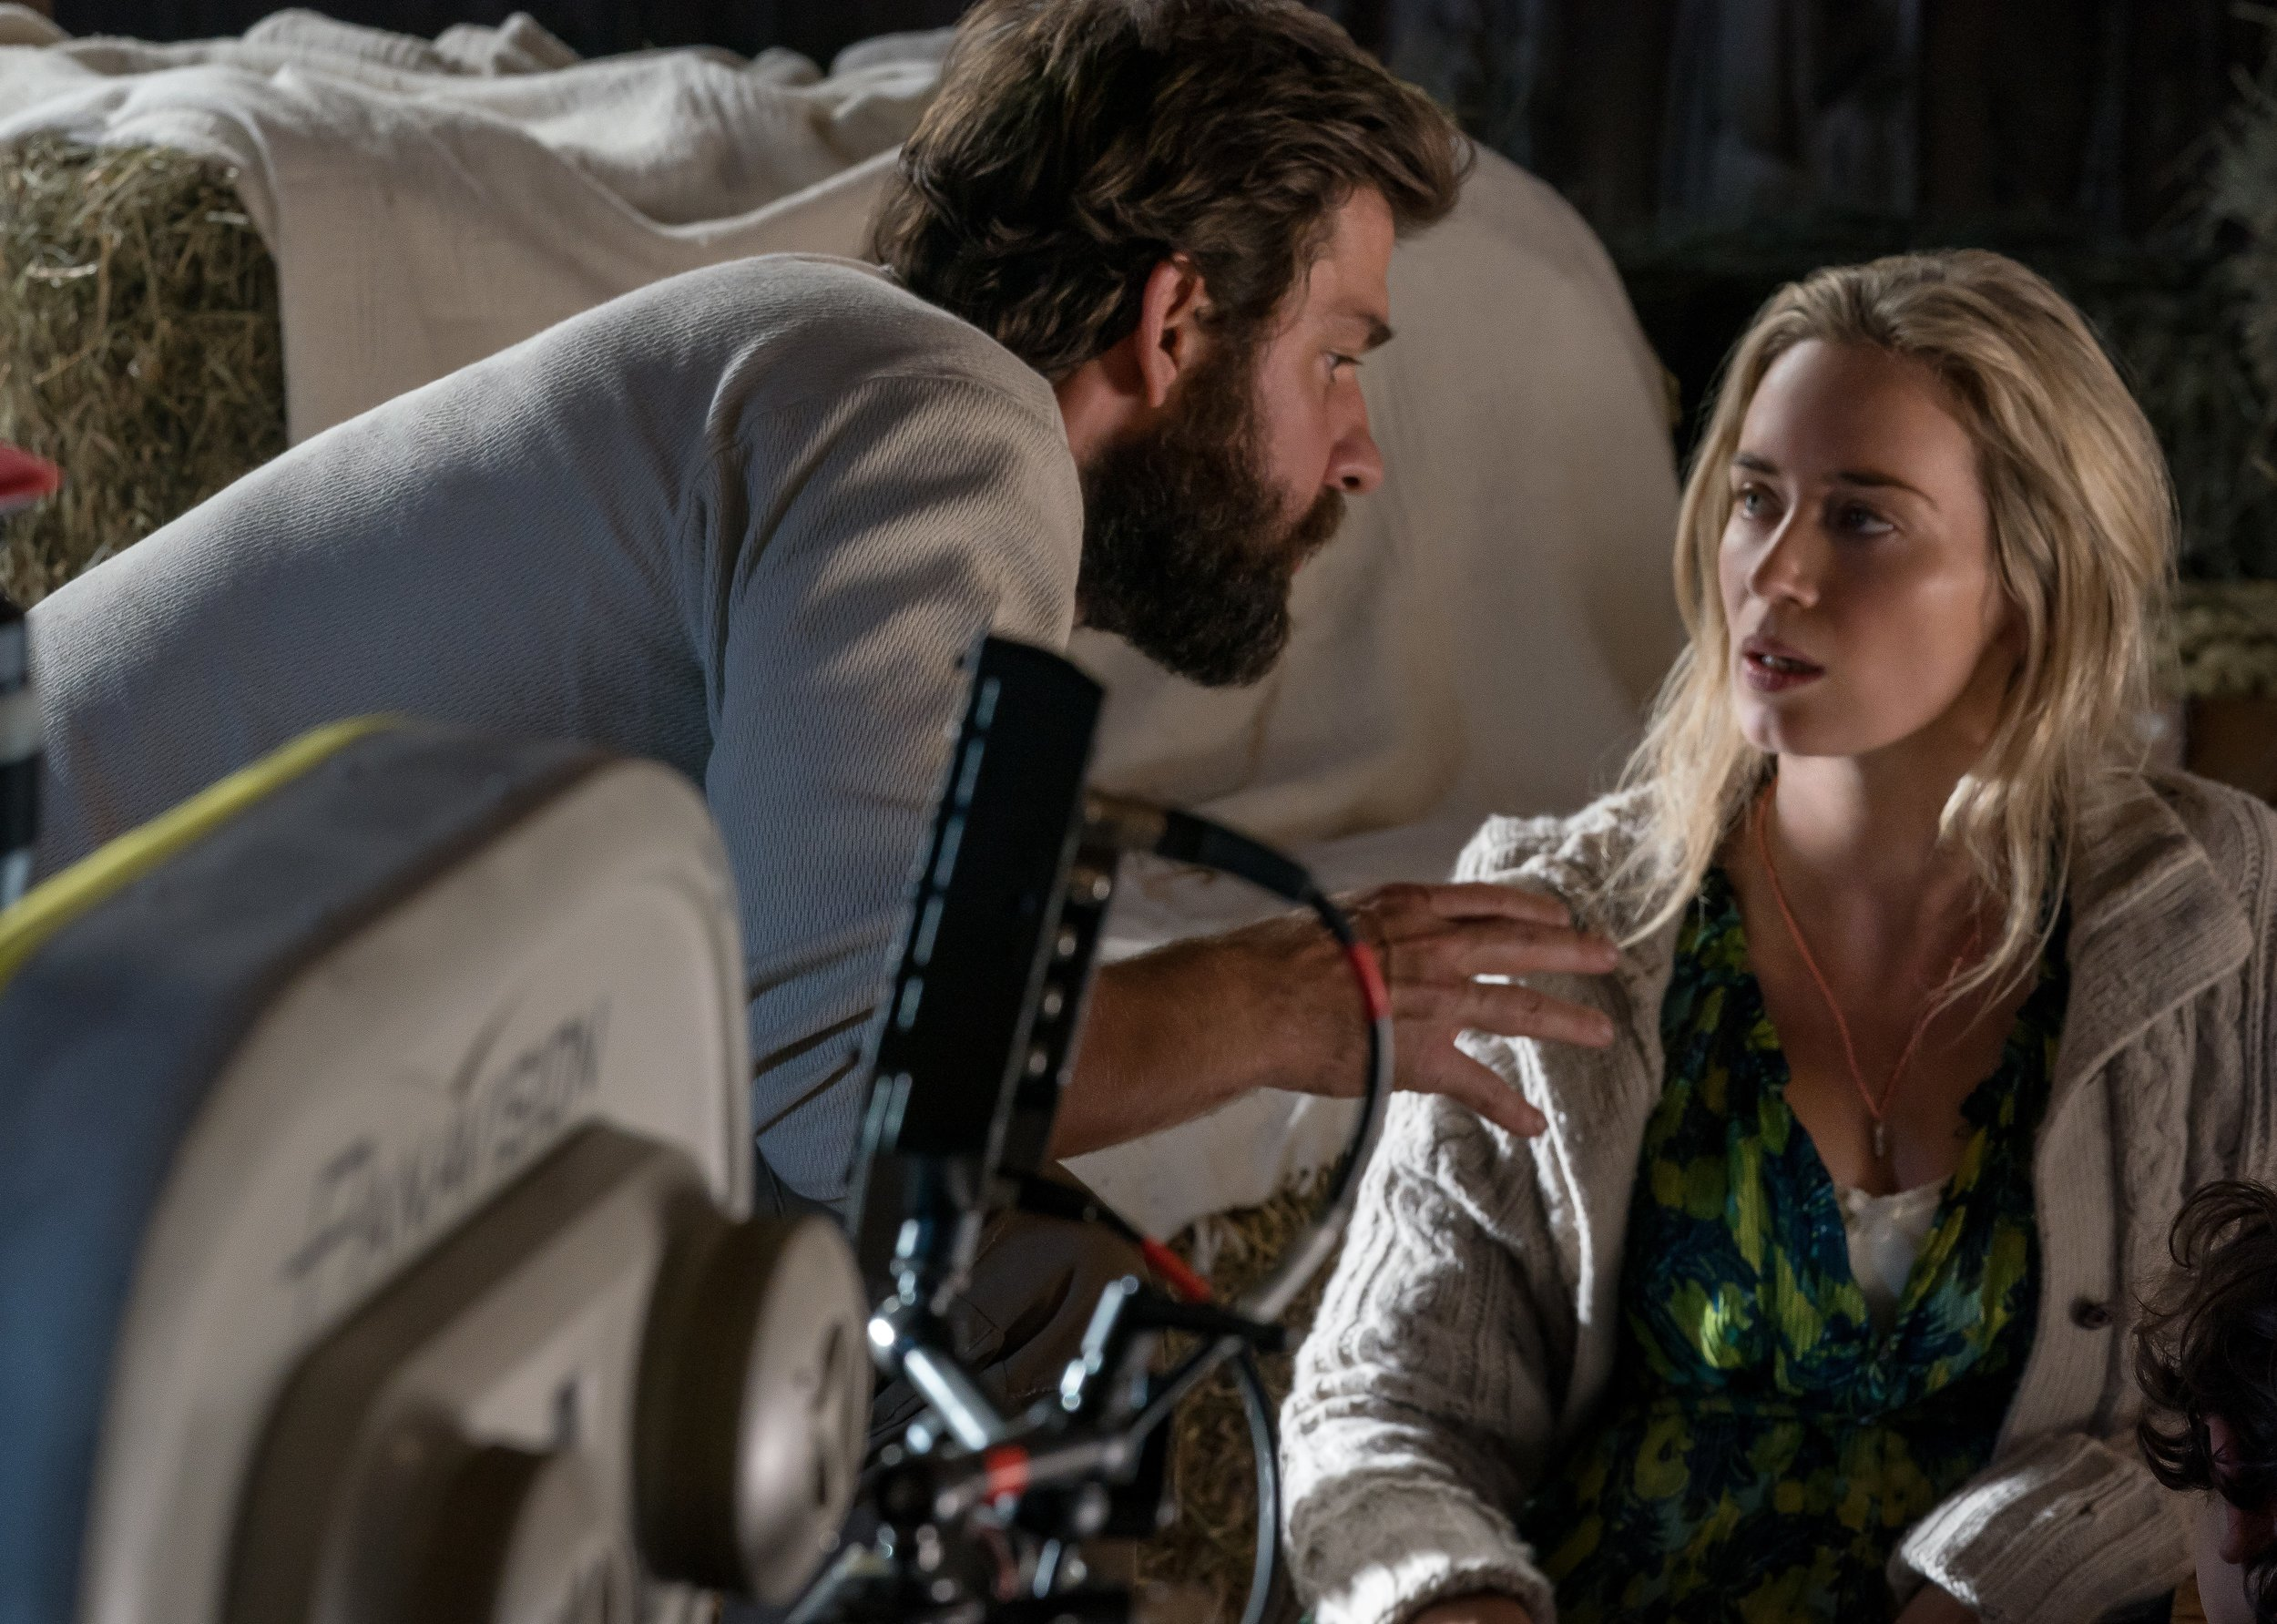 John Krasinski directs his wife Emily Blunt in A Quiet Place